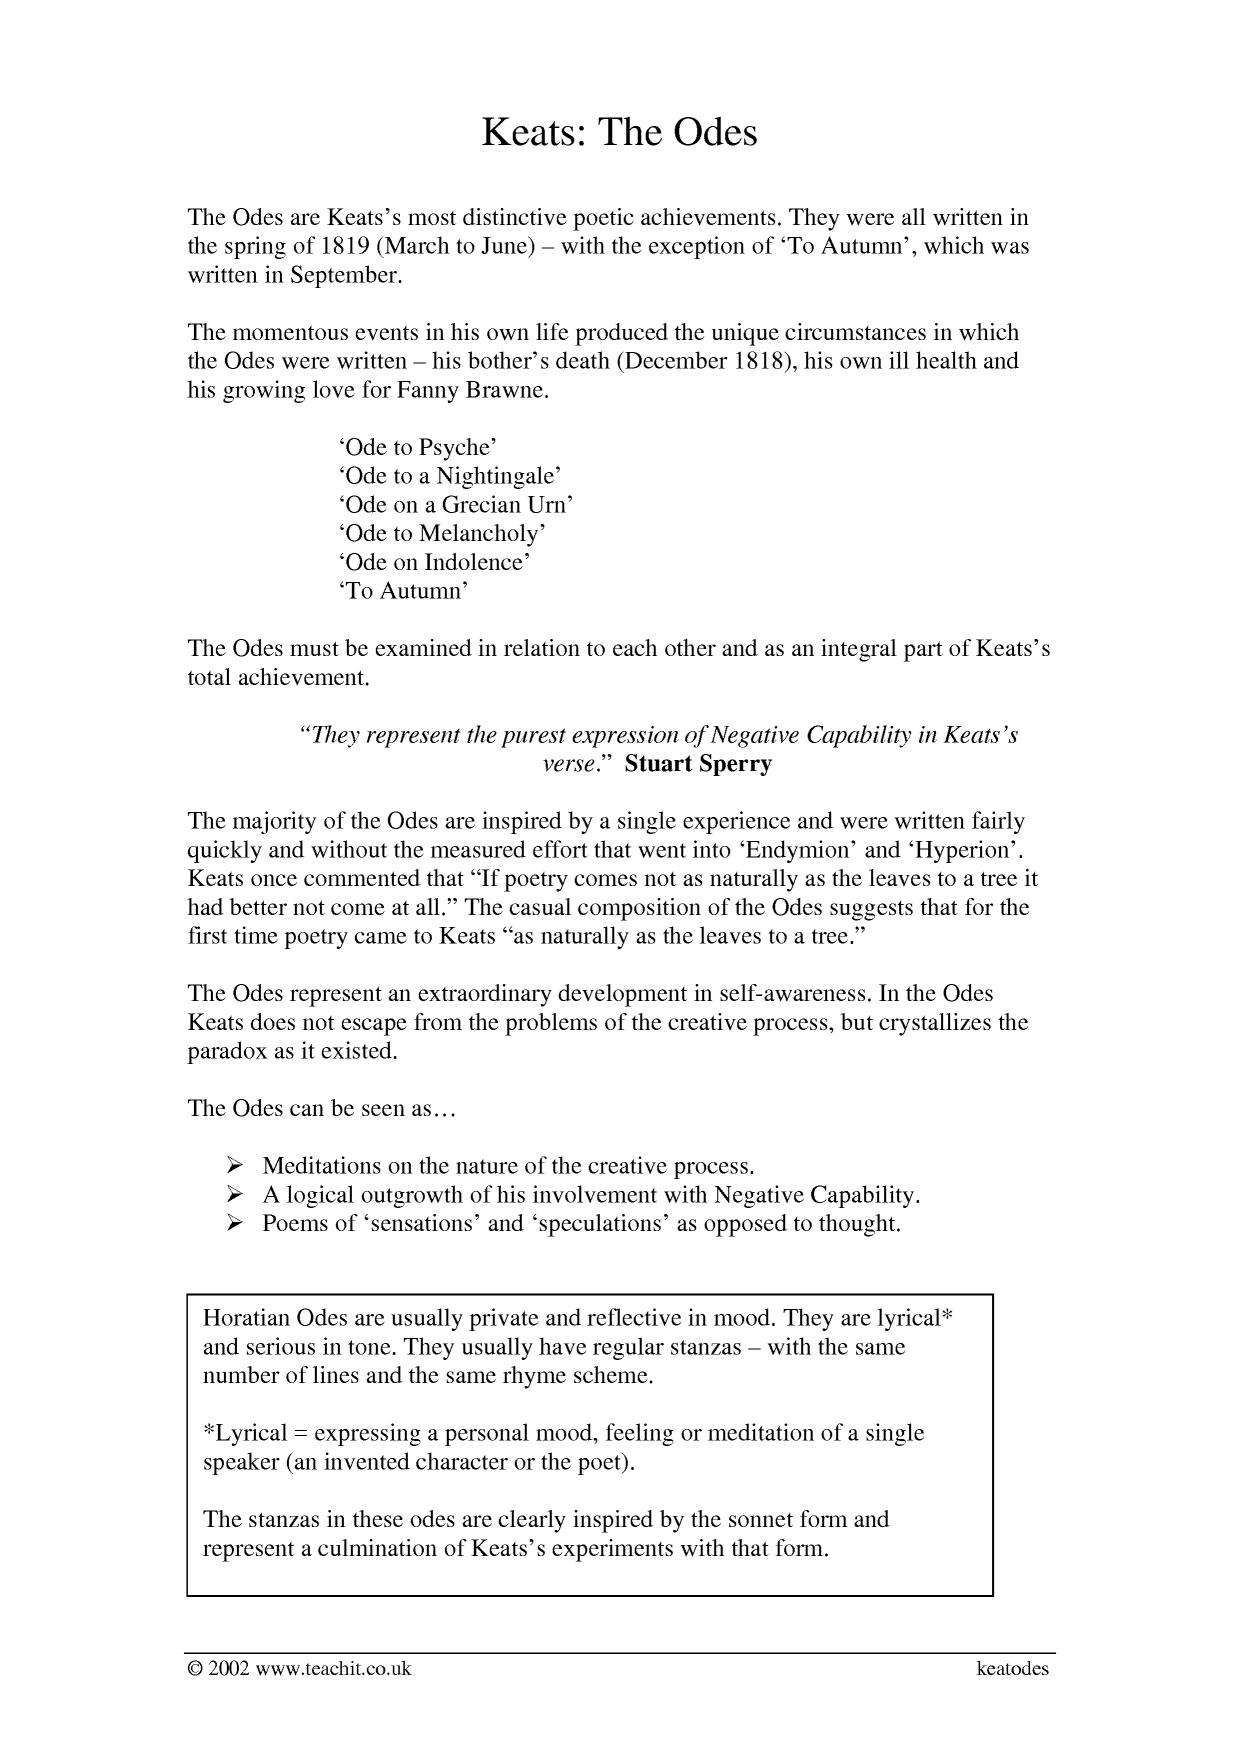 keats essay questions Free essay: a critical analysis of ode on a grecian urn the romantic period   in doing this keats felt the only way to achieve his goal of moving his  the  poem begins by probing the reader with a series of questions presented by the.